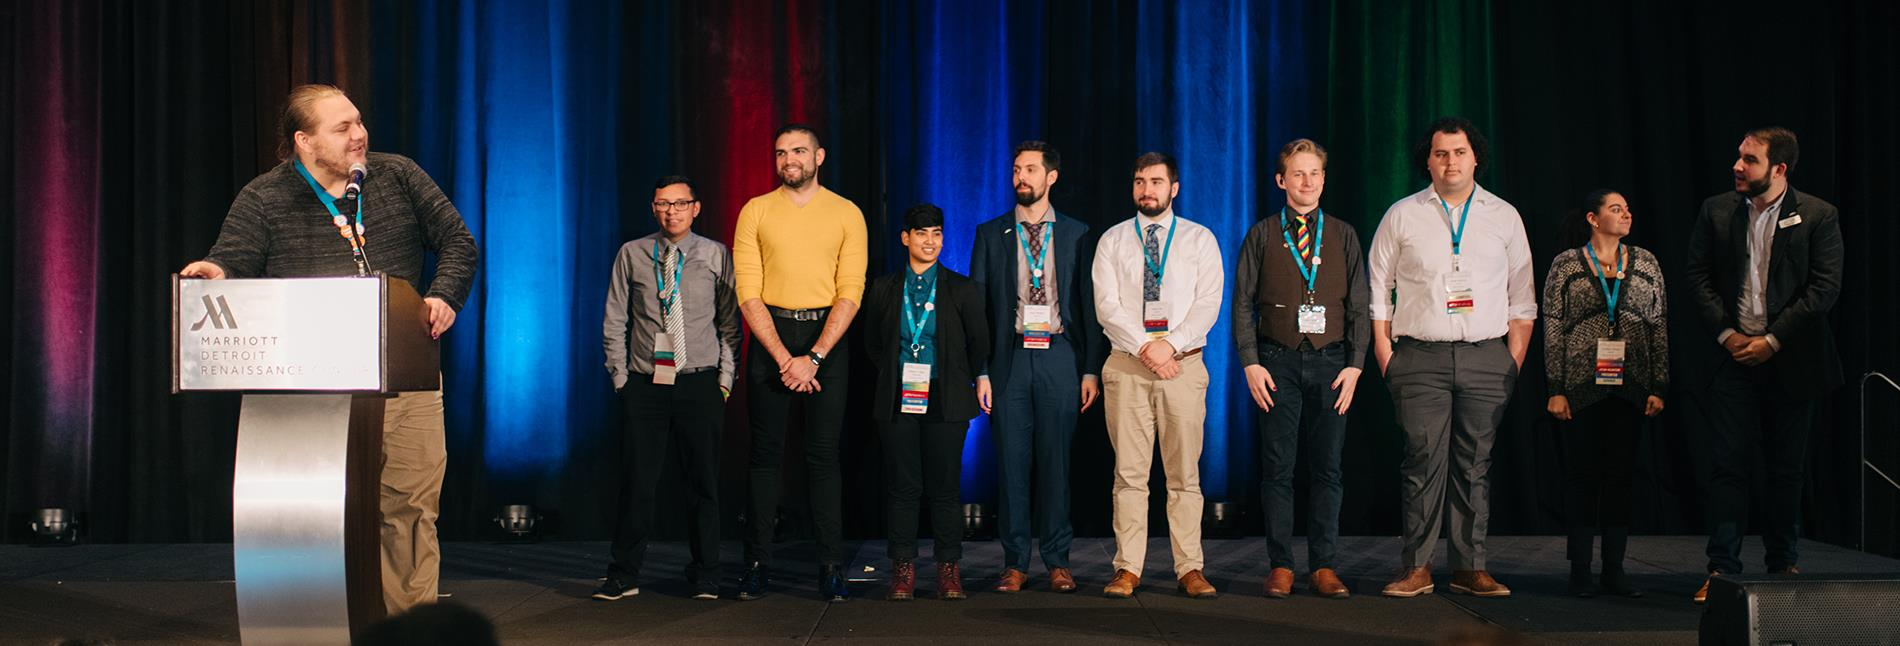 Conference Team on Stage oSTEM 2019